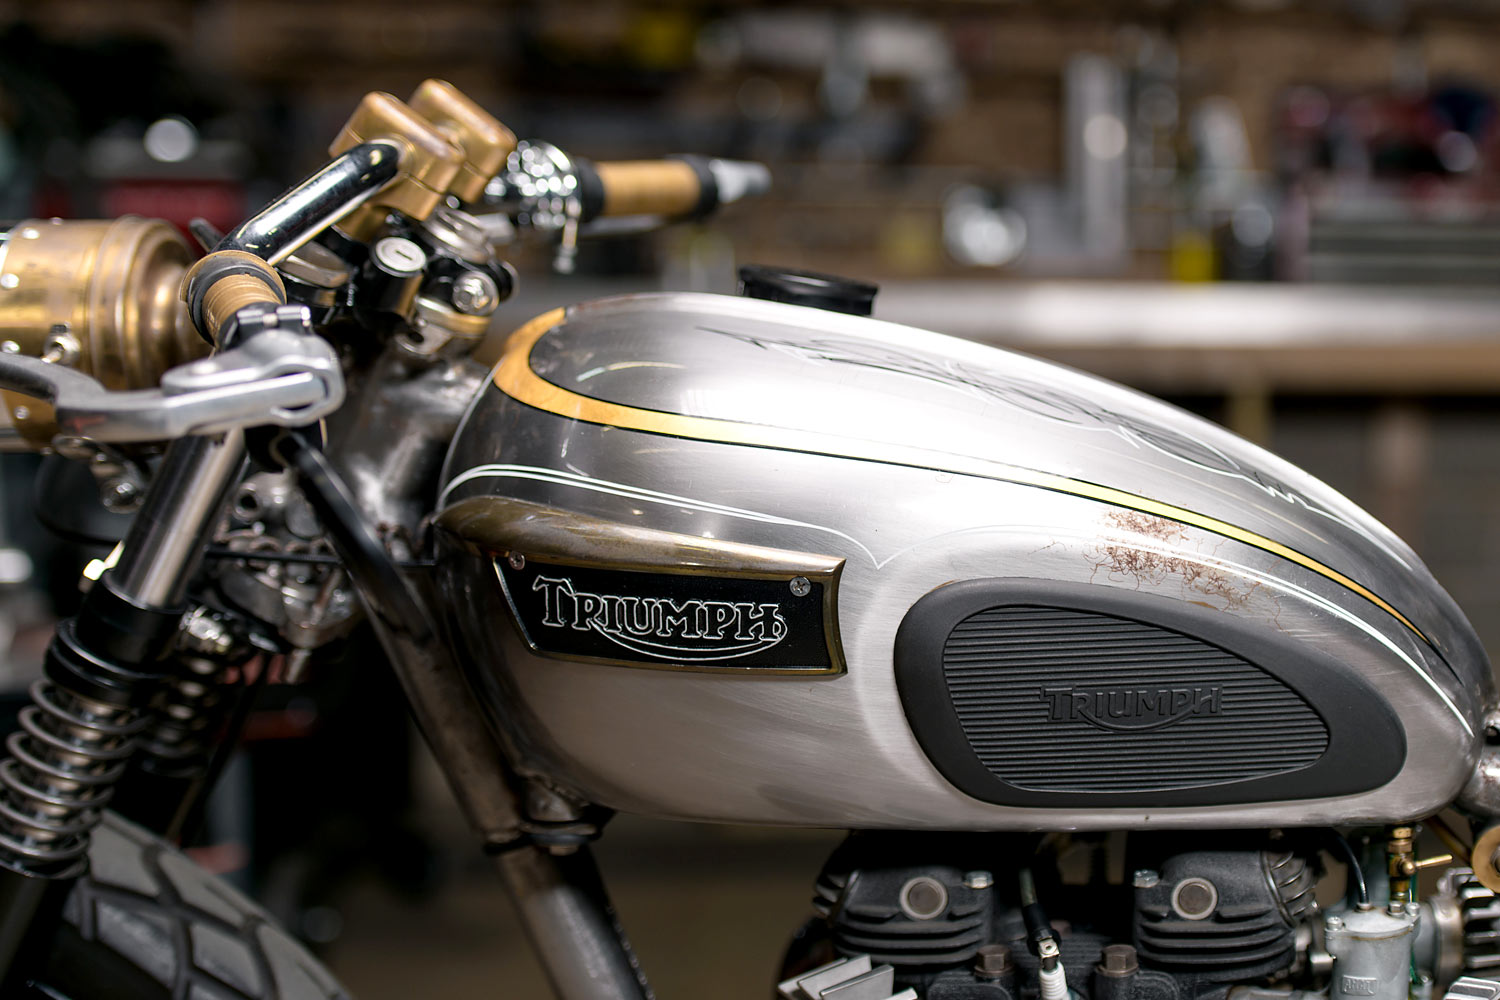 YOU ONLY LIVE TWICE  Analog Motorcycles Rebuild Their